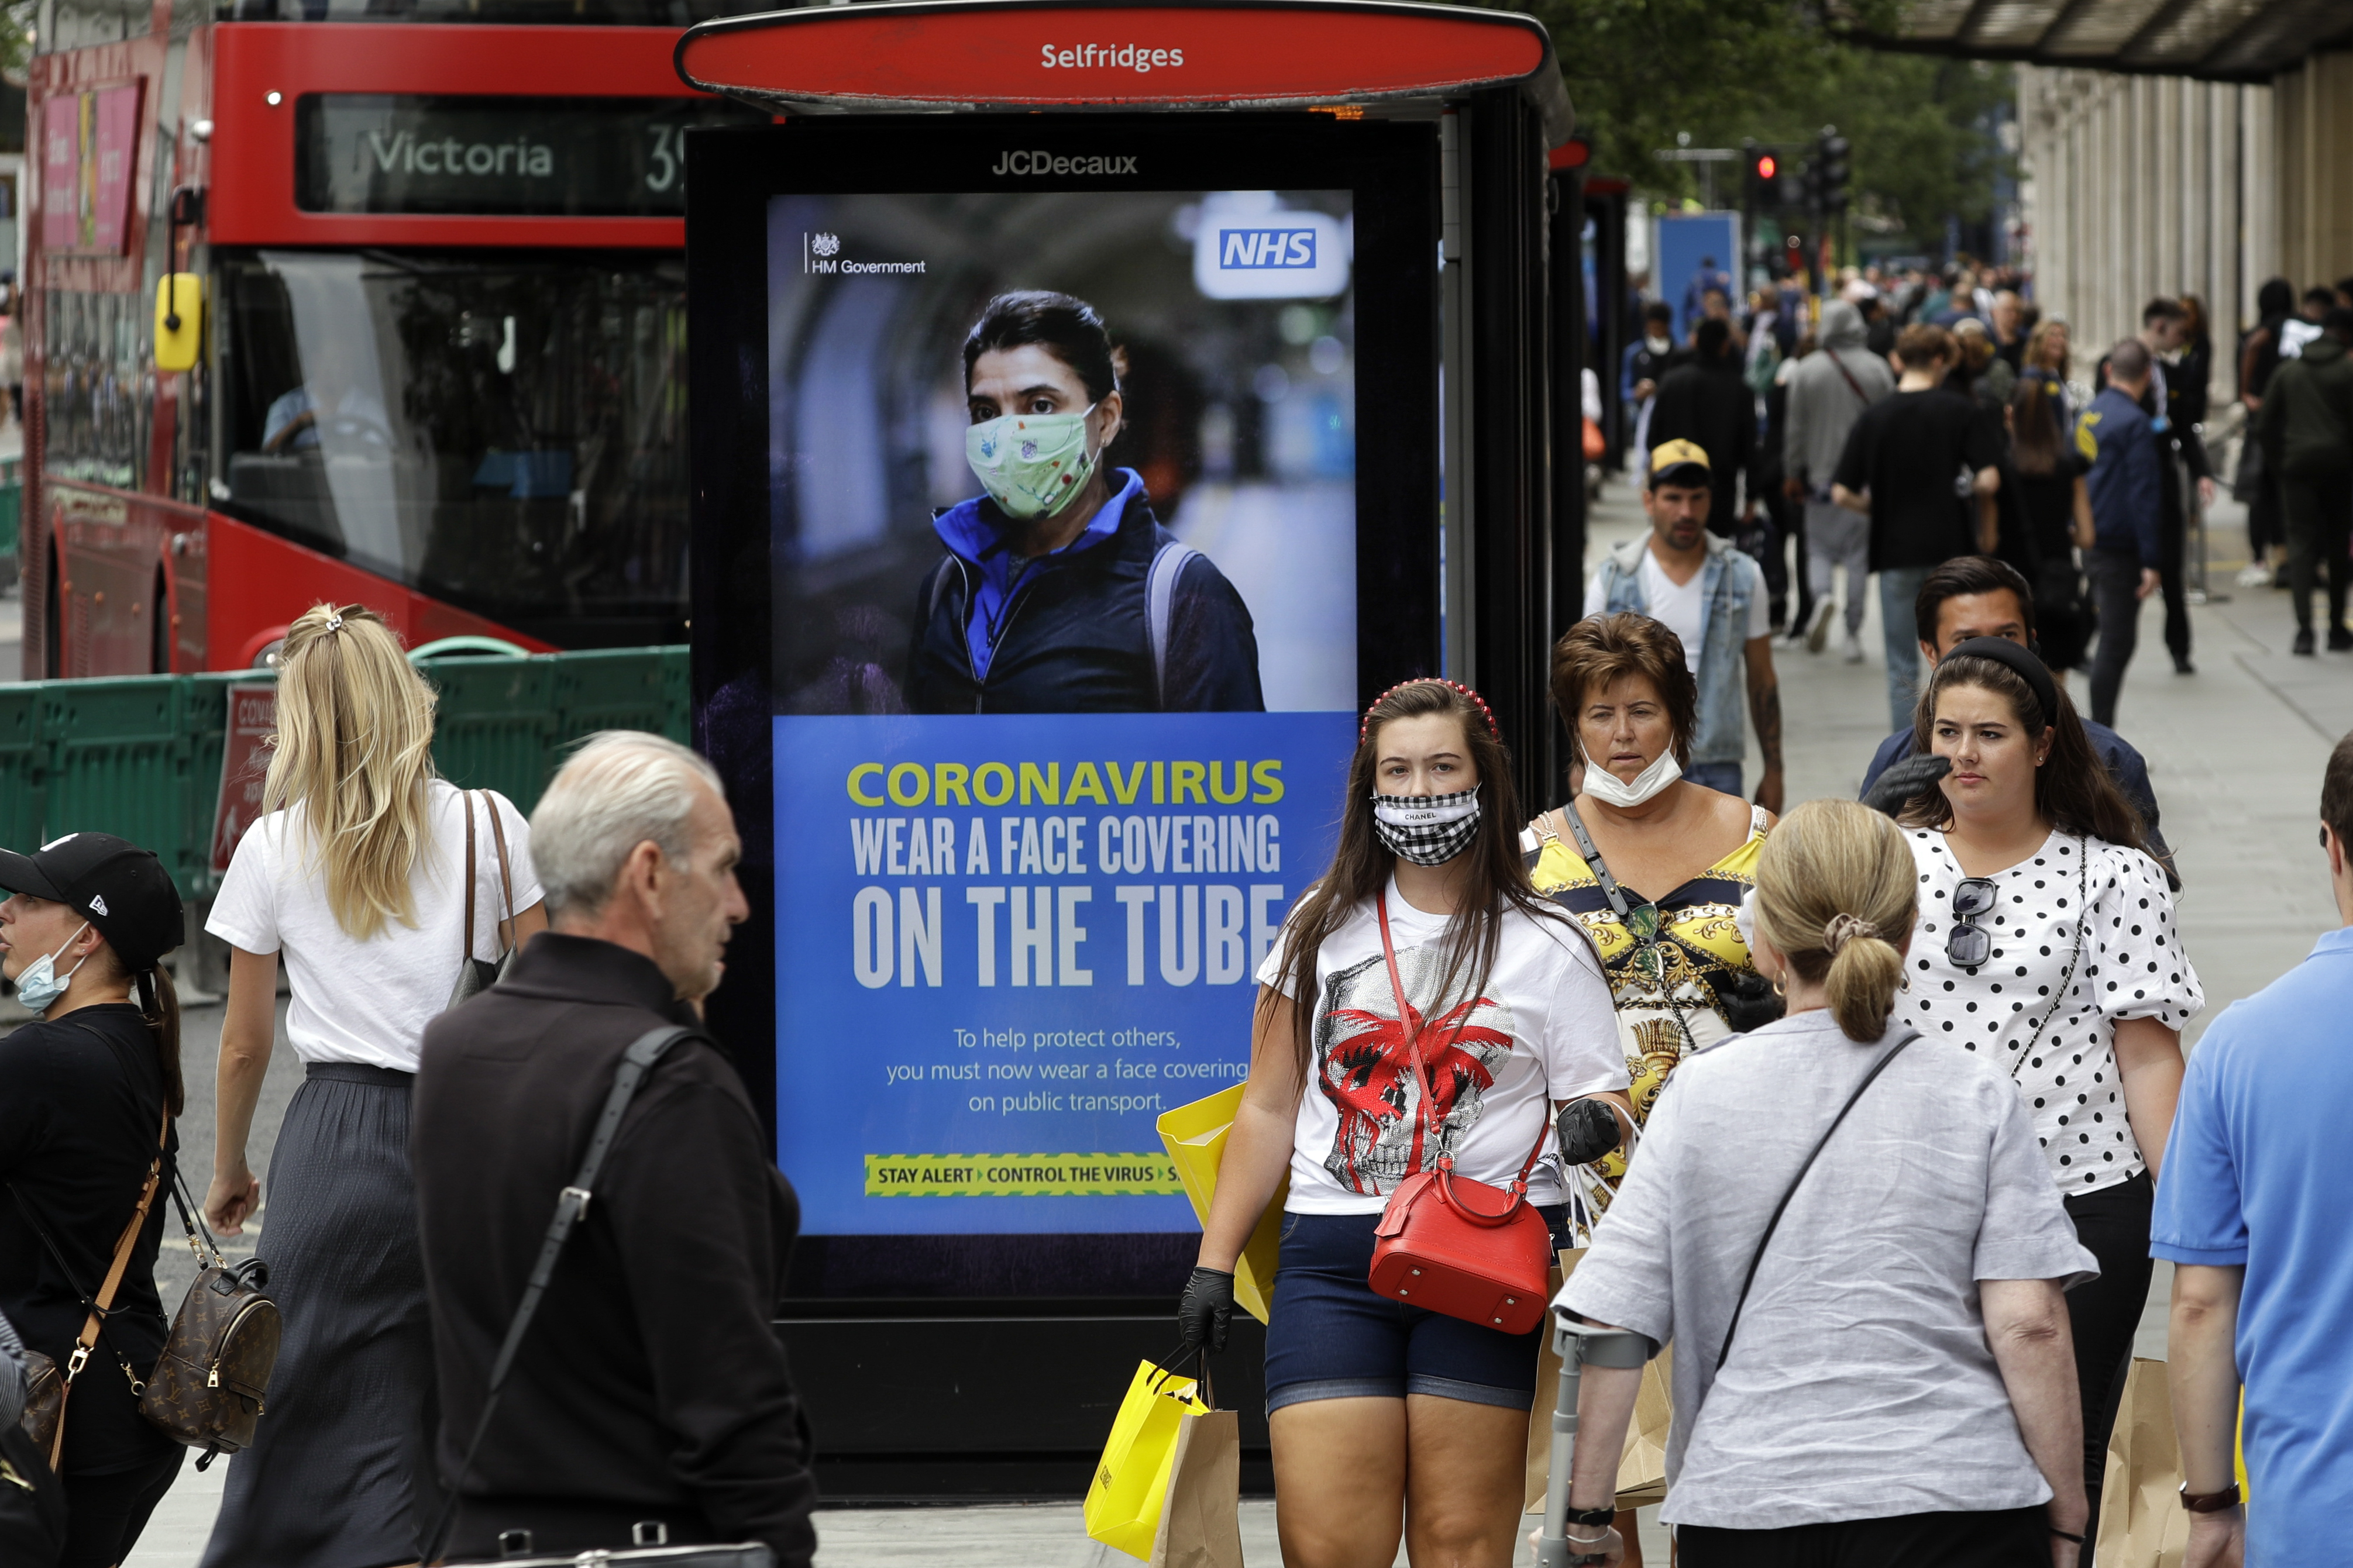 People walk by a COVID-19 infection awareness poster in London, Monday, June 15, 2020. After three months of being closed under coronavirus restrictions, shops selling fashion, toys and other non-essential goods are being allowed to reopen across England for the first time since the country went into lockdown in March.(AP Photo/Matt Dunham)